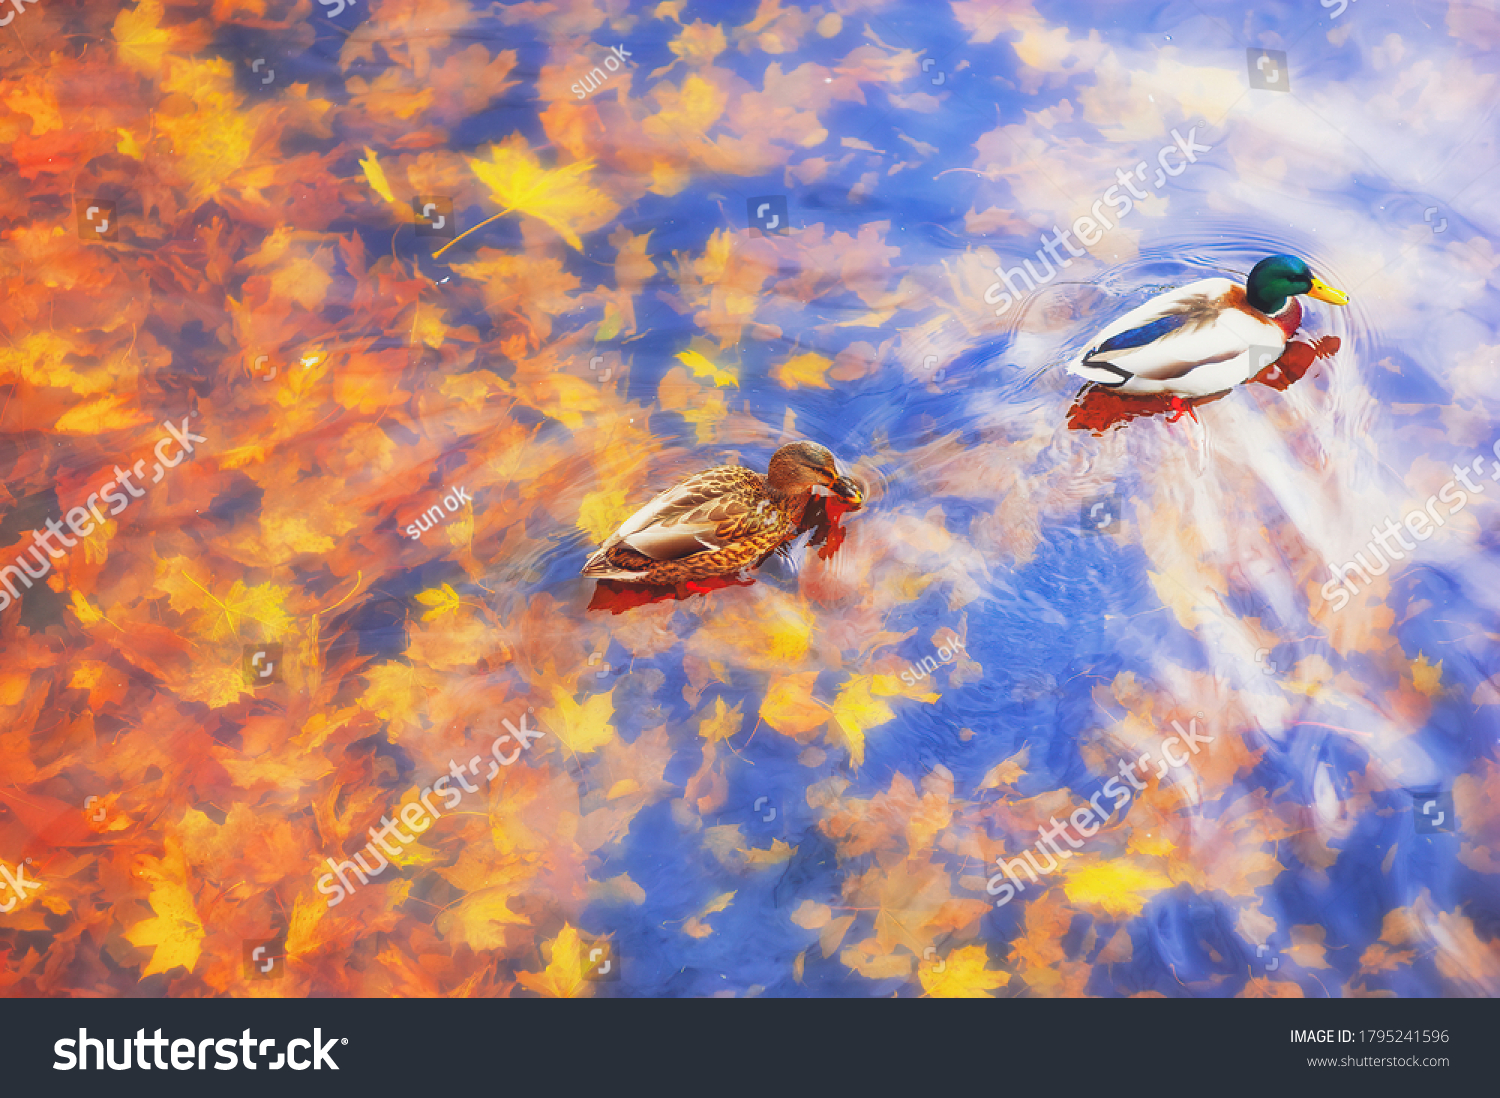 Two mallard ducks on a water in dark pond with floating autumn or fall leaves, top view. Beautiful fall nature . Autumn october season animal, landscape background. Vibrant red orange nature colors #1795241596